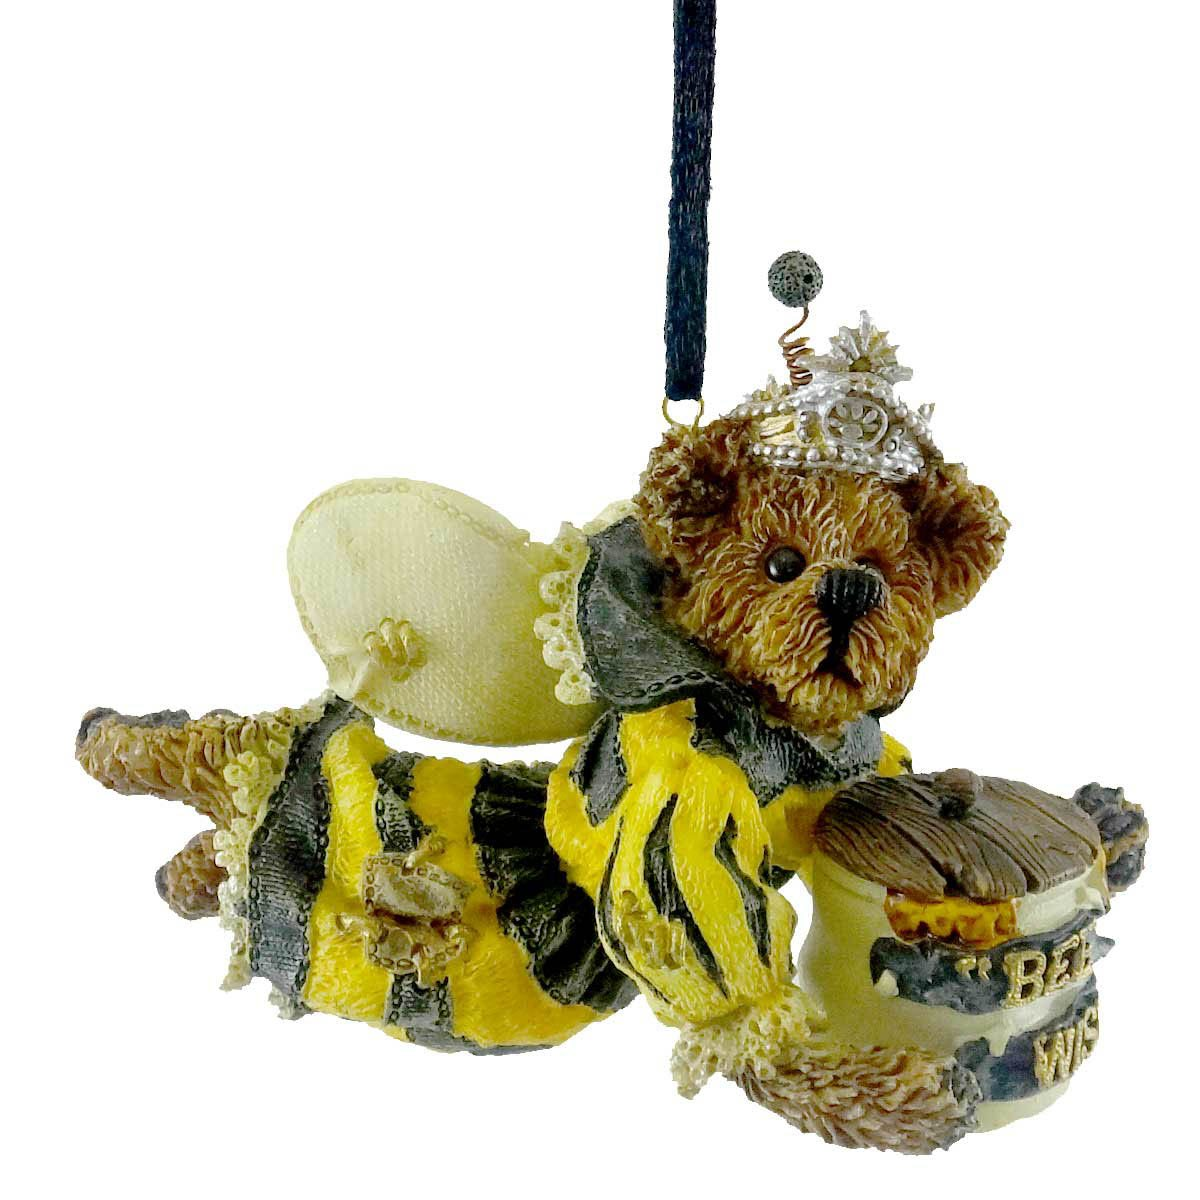 suministramos lo mejor Boyds Bears Sage Buzzby - Bee Wise Retirojo Retirojo Retirojo 25715 by Bears And Hares You Can Trust  conveniente